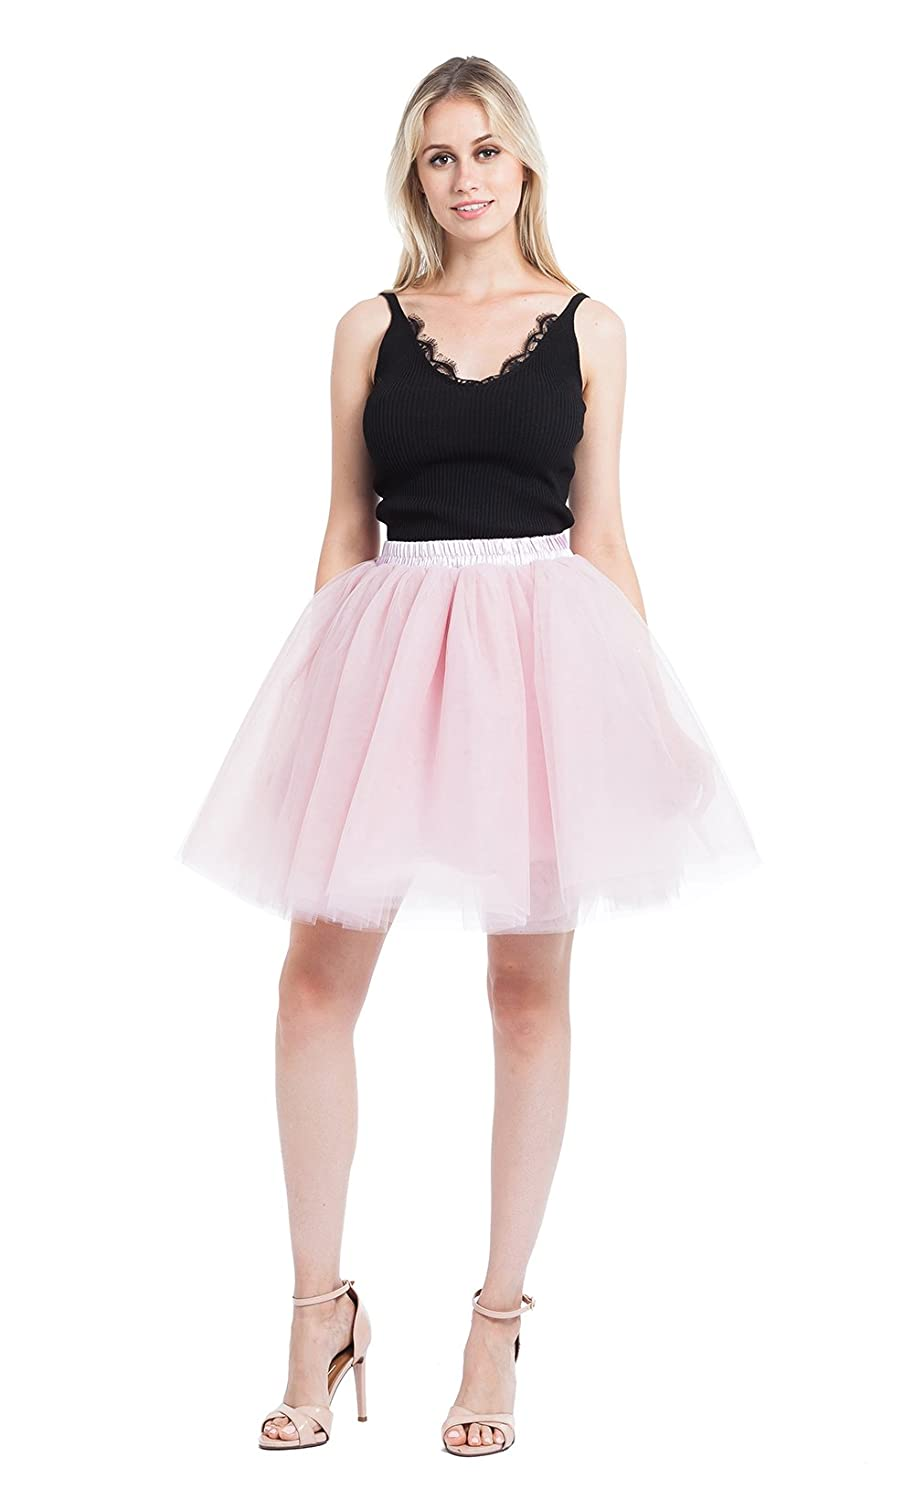 e48c5b0a89 MATERIAL: 6 layers tulle + 1 layer satin lining = 7 layers ;bridal quality  nylon tulle, soft and durable, LENGTH:19.68 inch ;Elastic waistband can  stretches ...